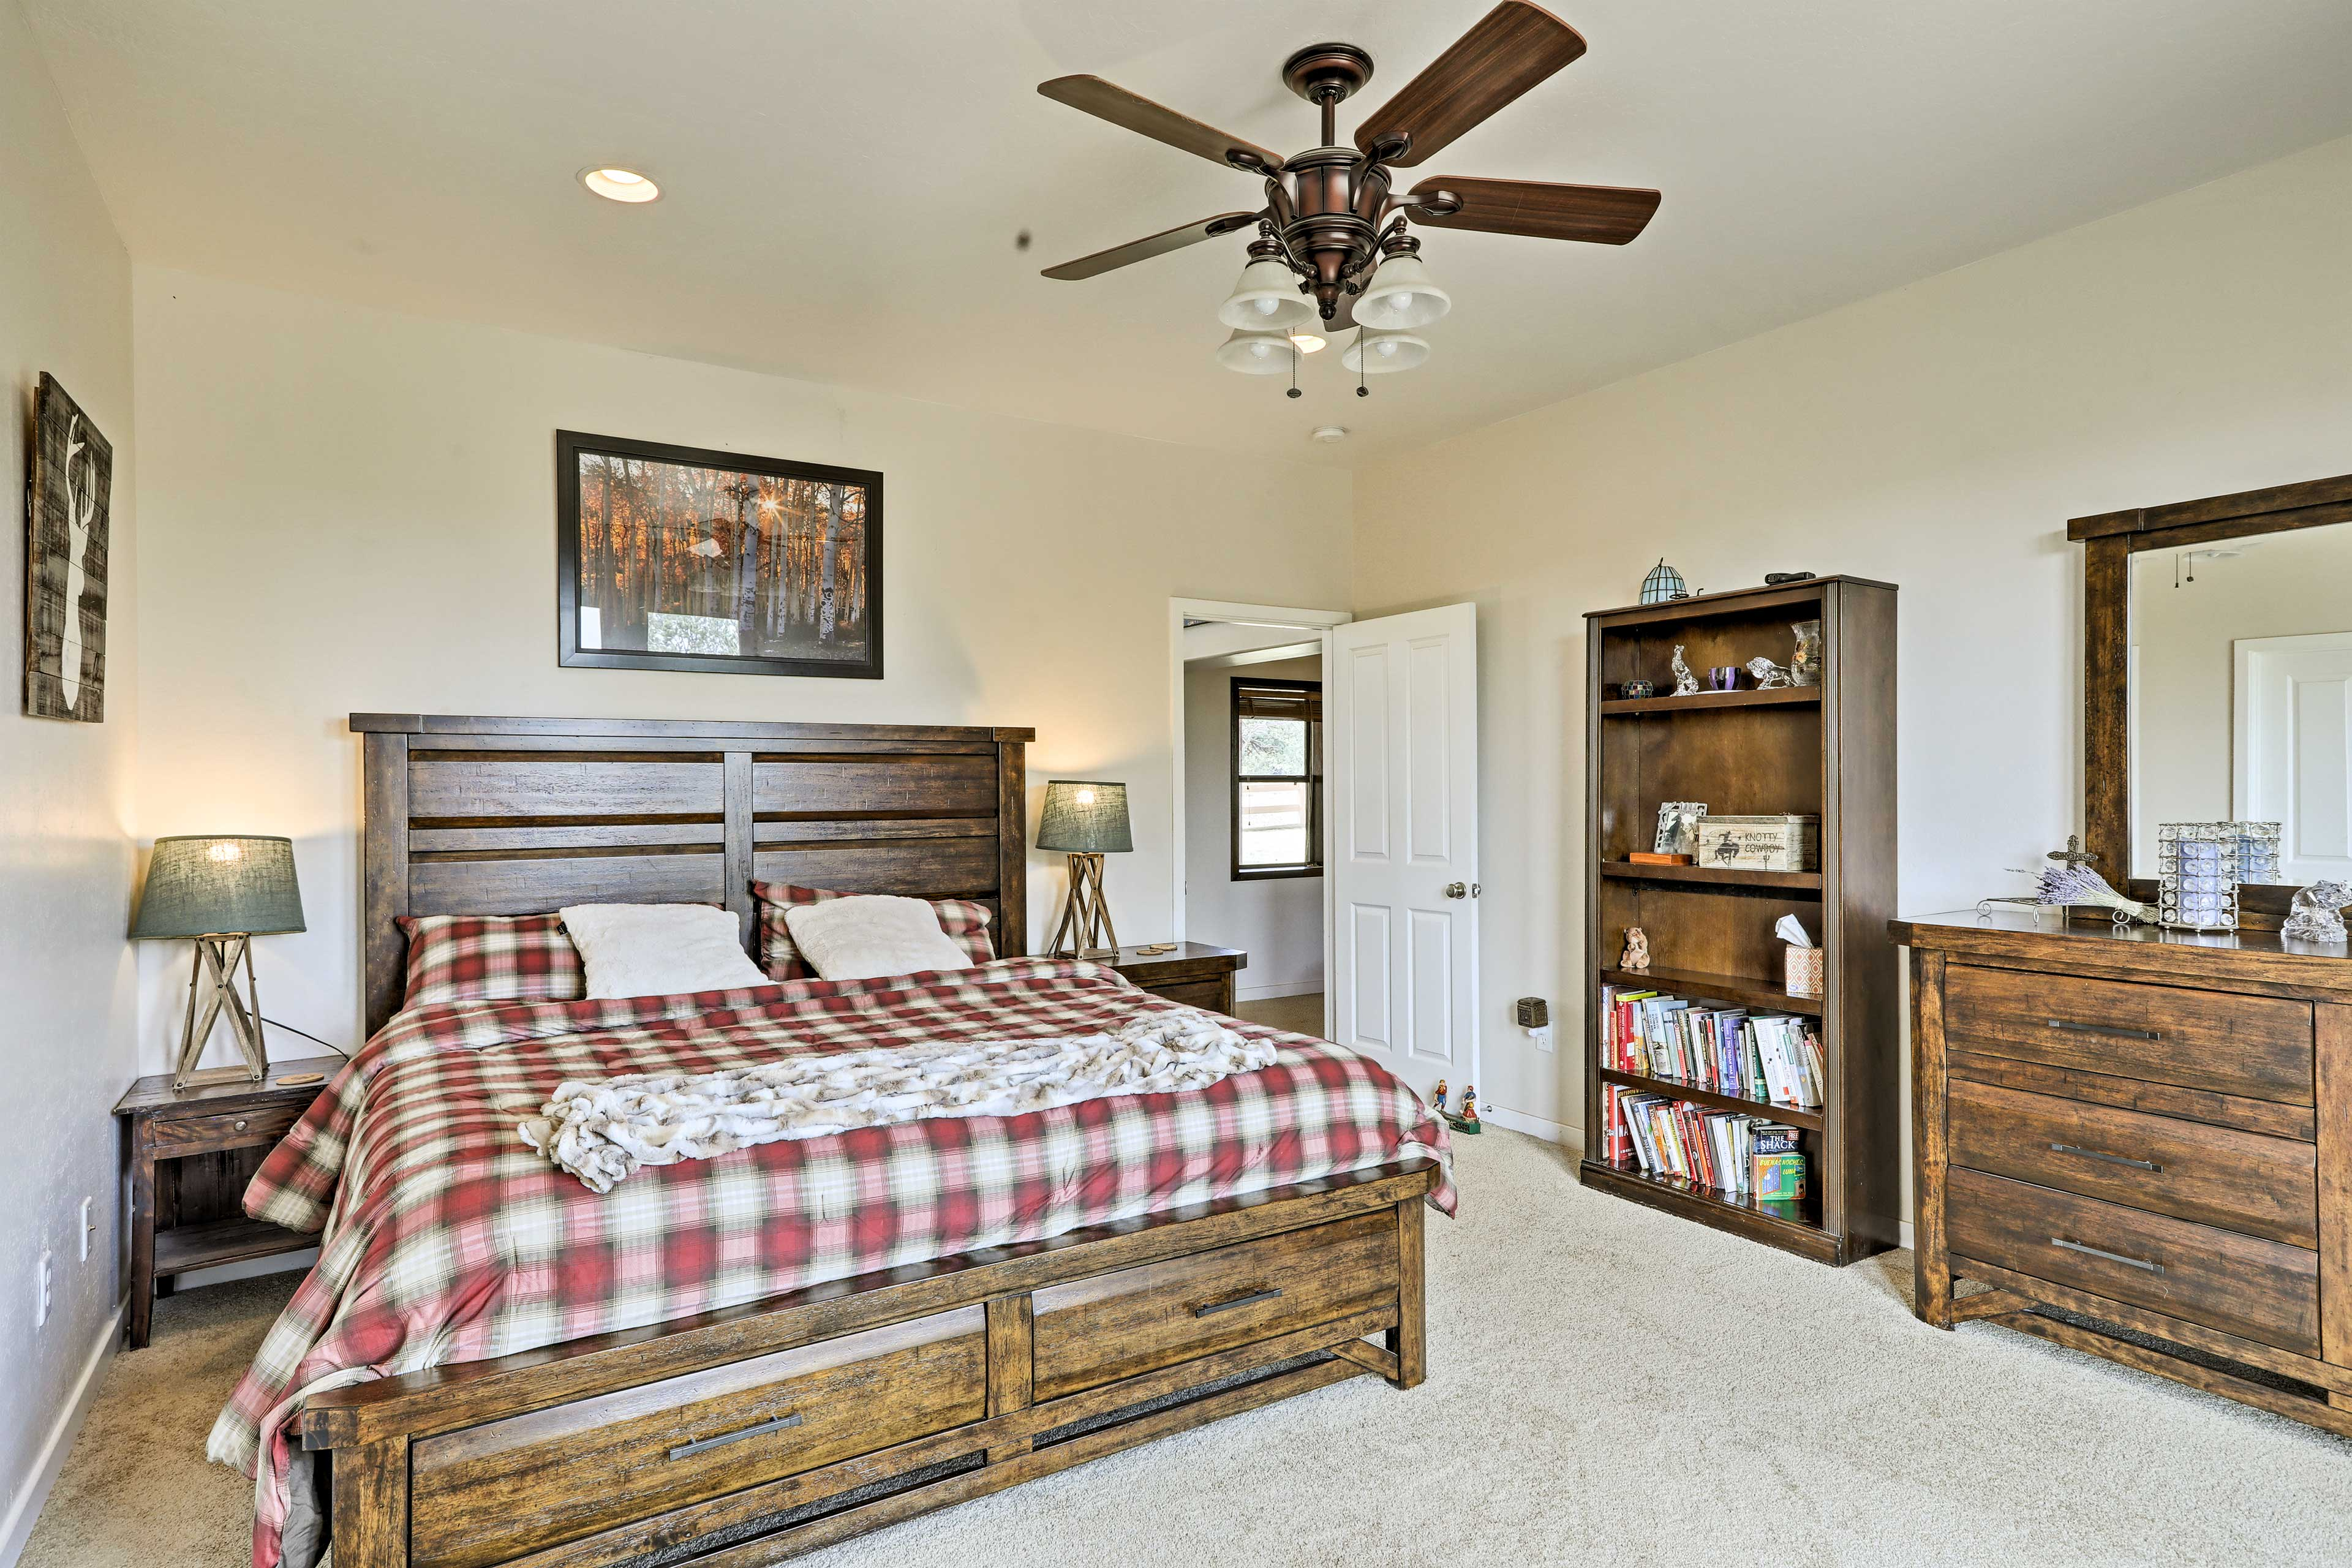 The master bedroom has a cozy king mattress.